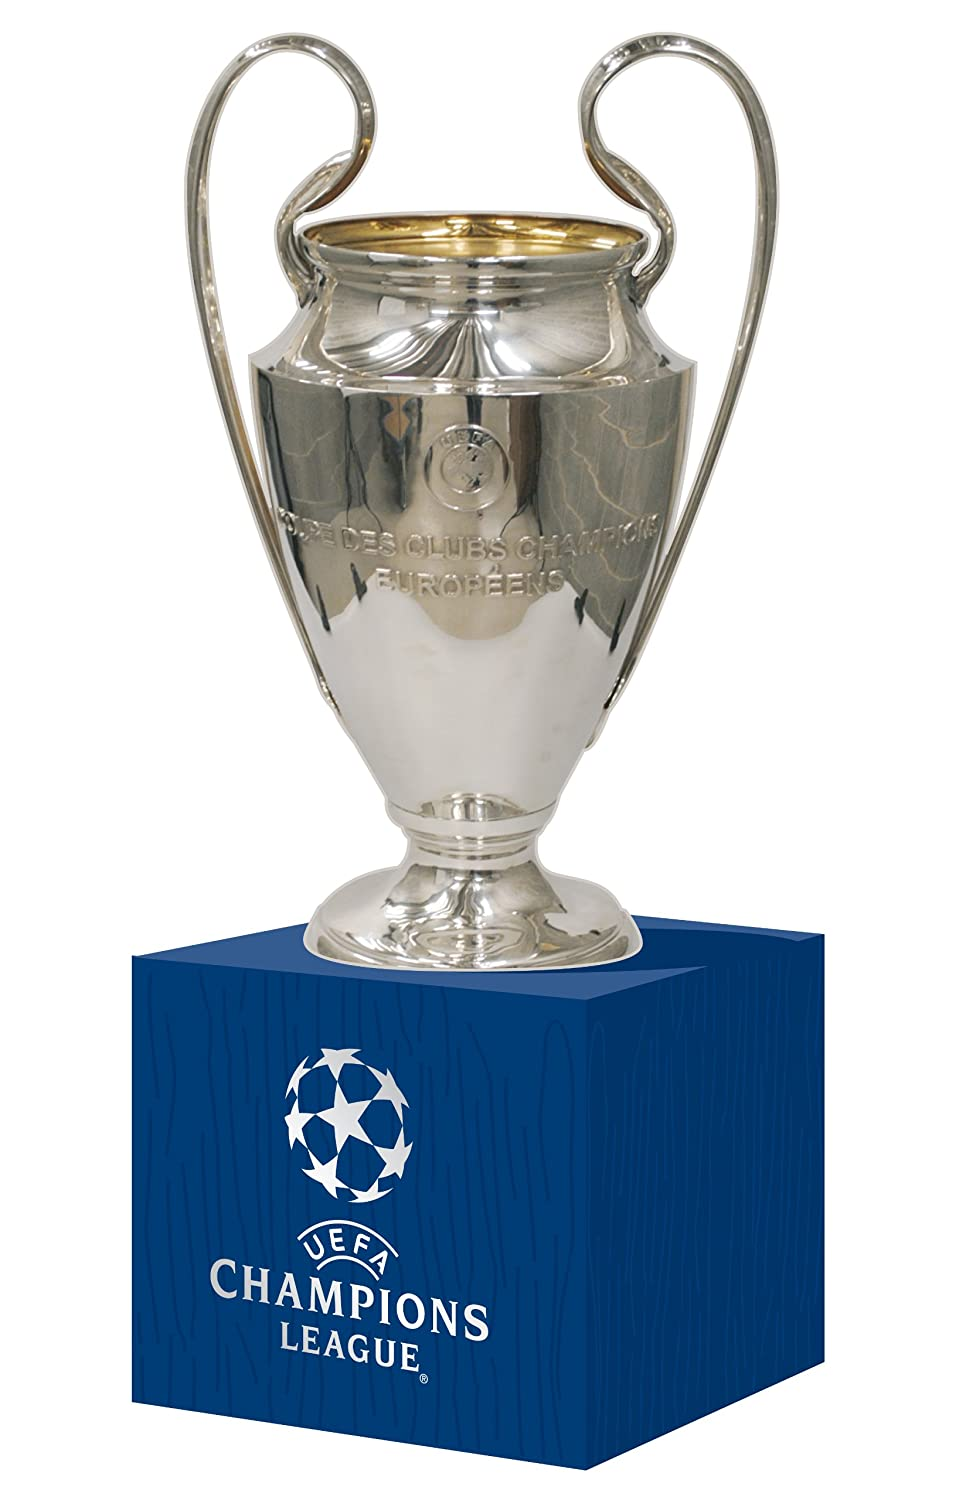 UEFA UEFA-CL-70-HP Champions League Replica Trophy 70 mm on Wooden Base Silver